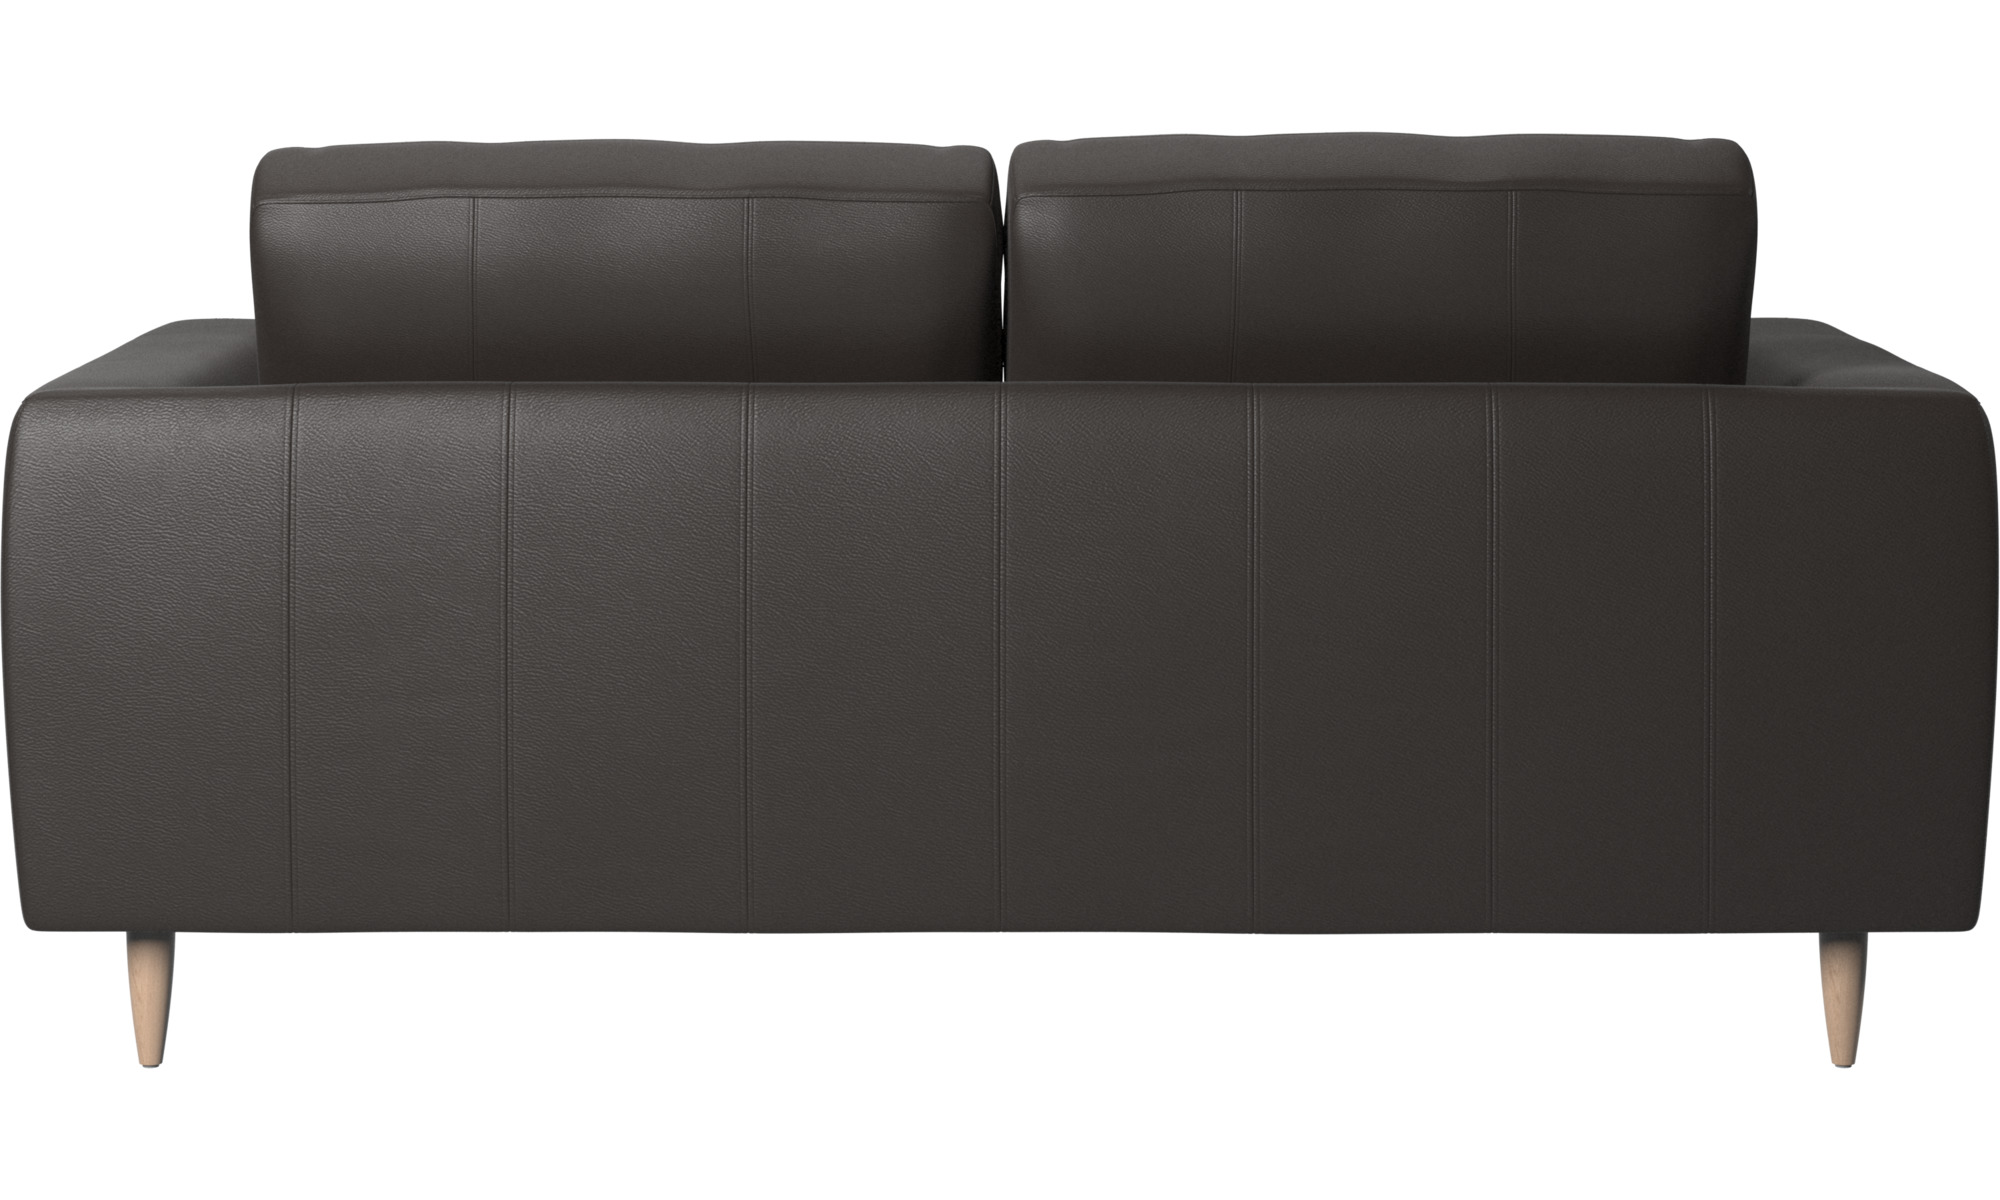 2 personers sofaer fargo sofa boconcept. Black Bedroom Furniture Sets. Home Design Ideas